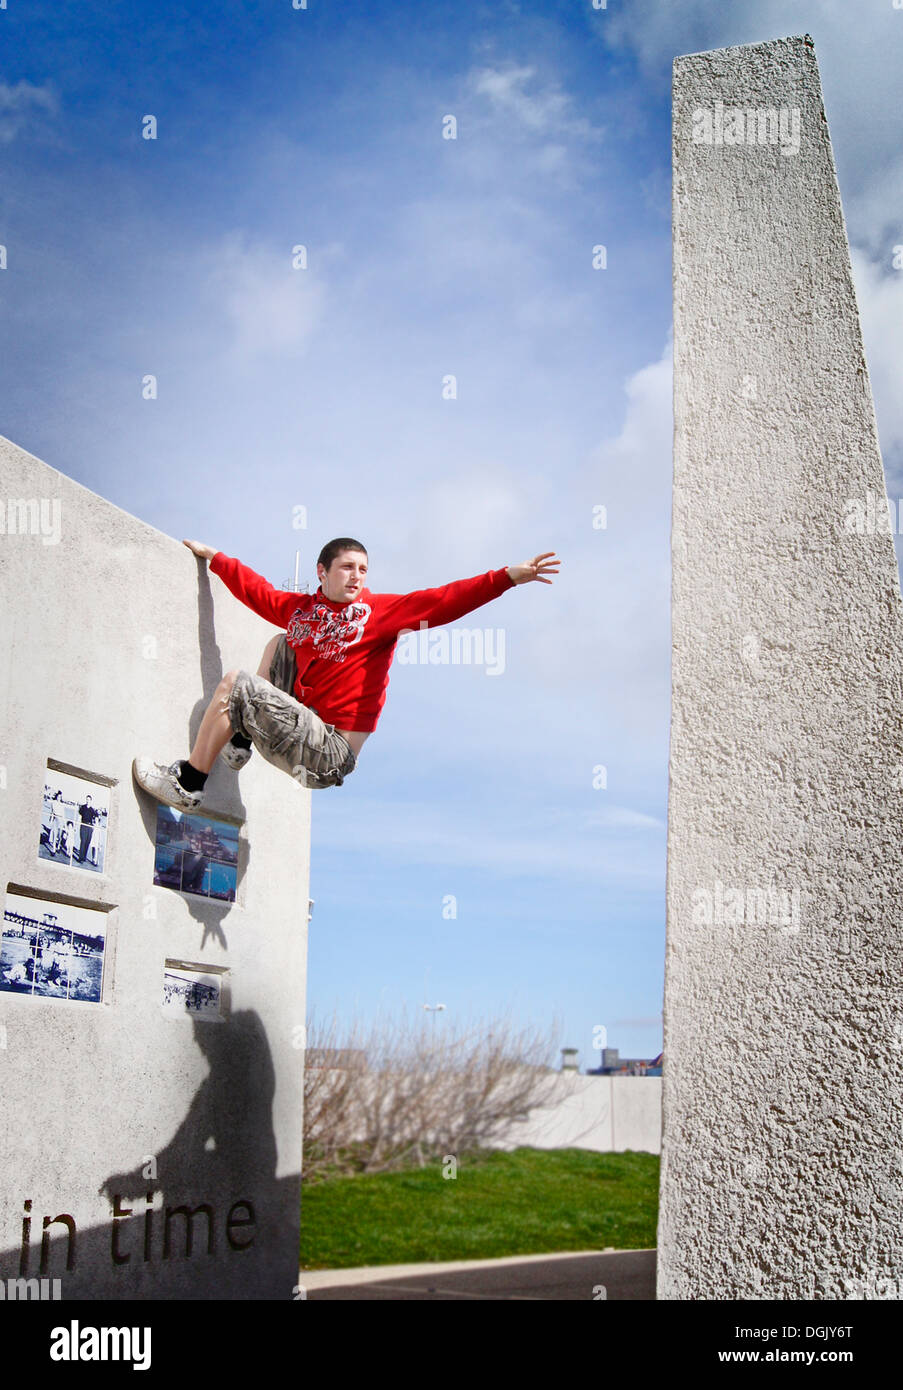 A freerunning athlete in action. - Stock Image